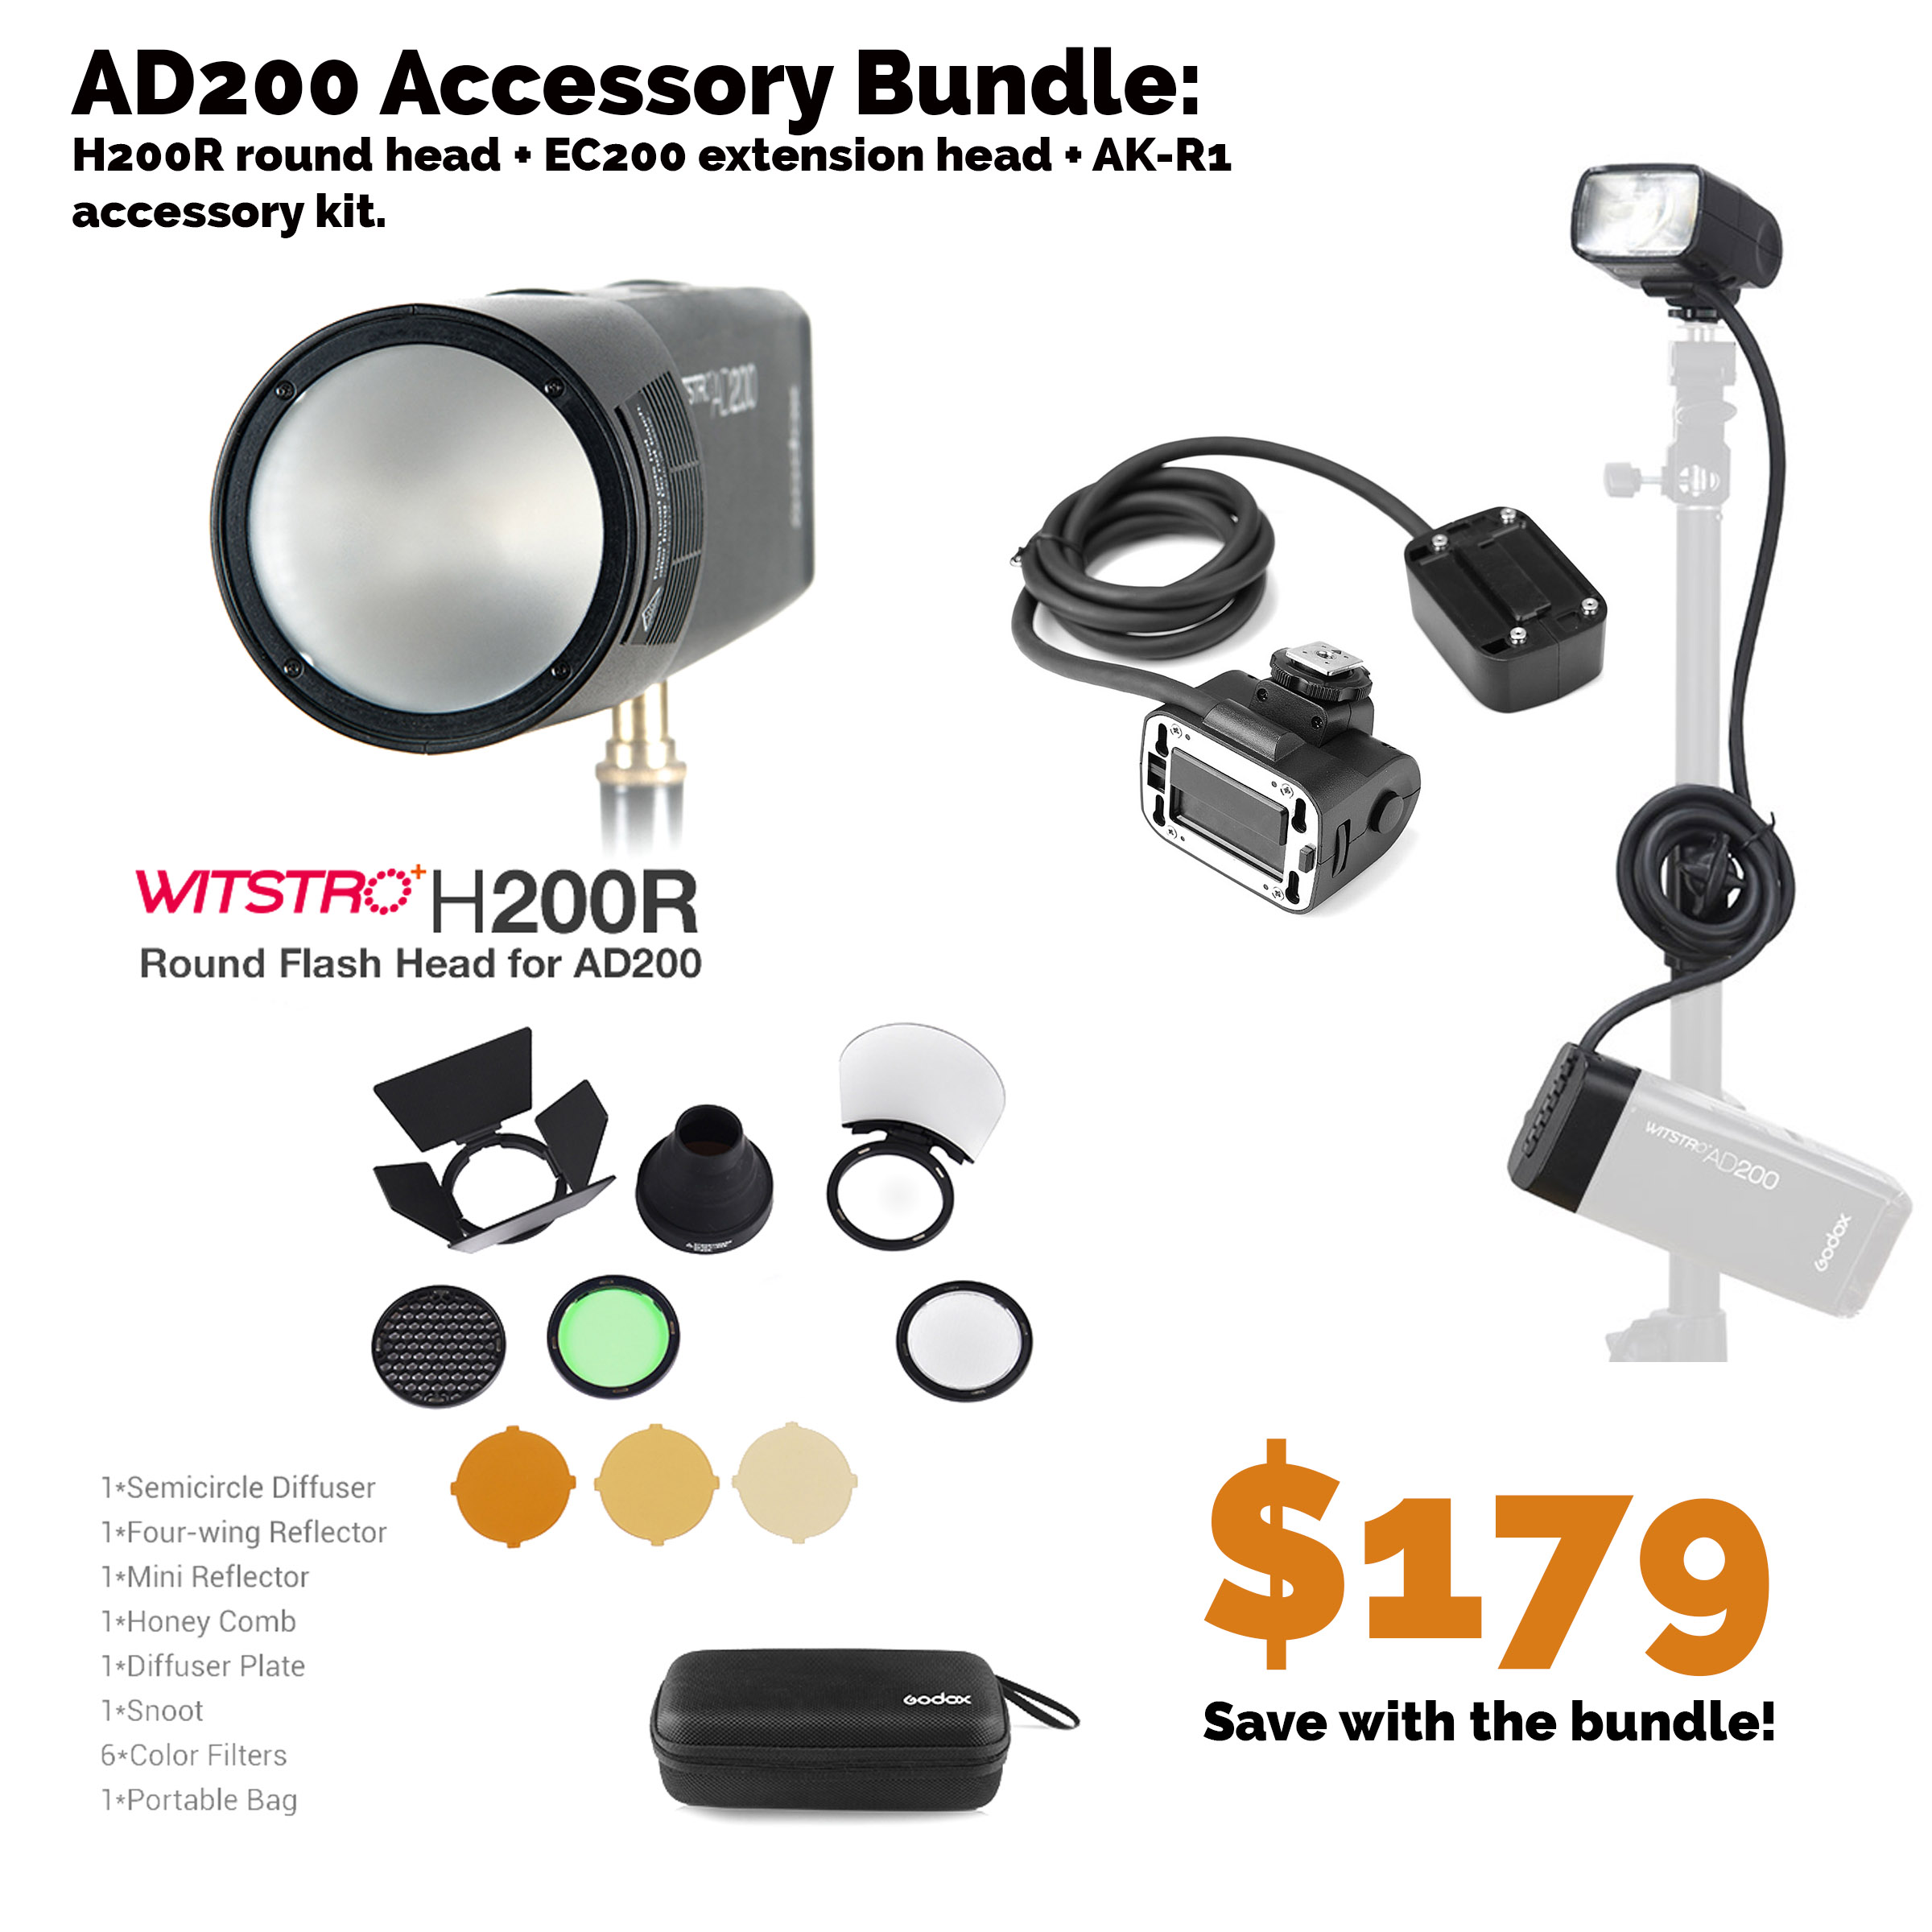 AD200 Accessory Bundle